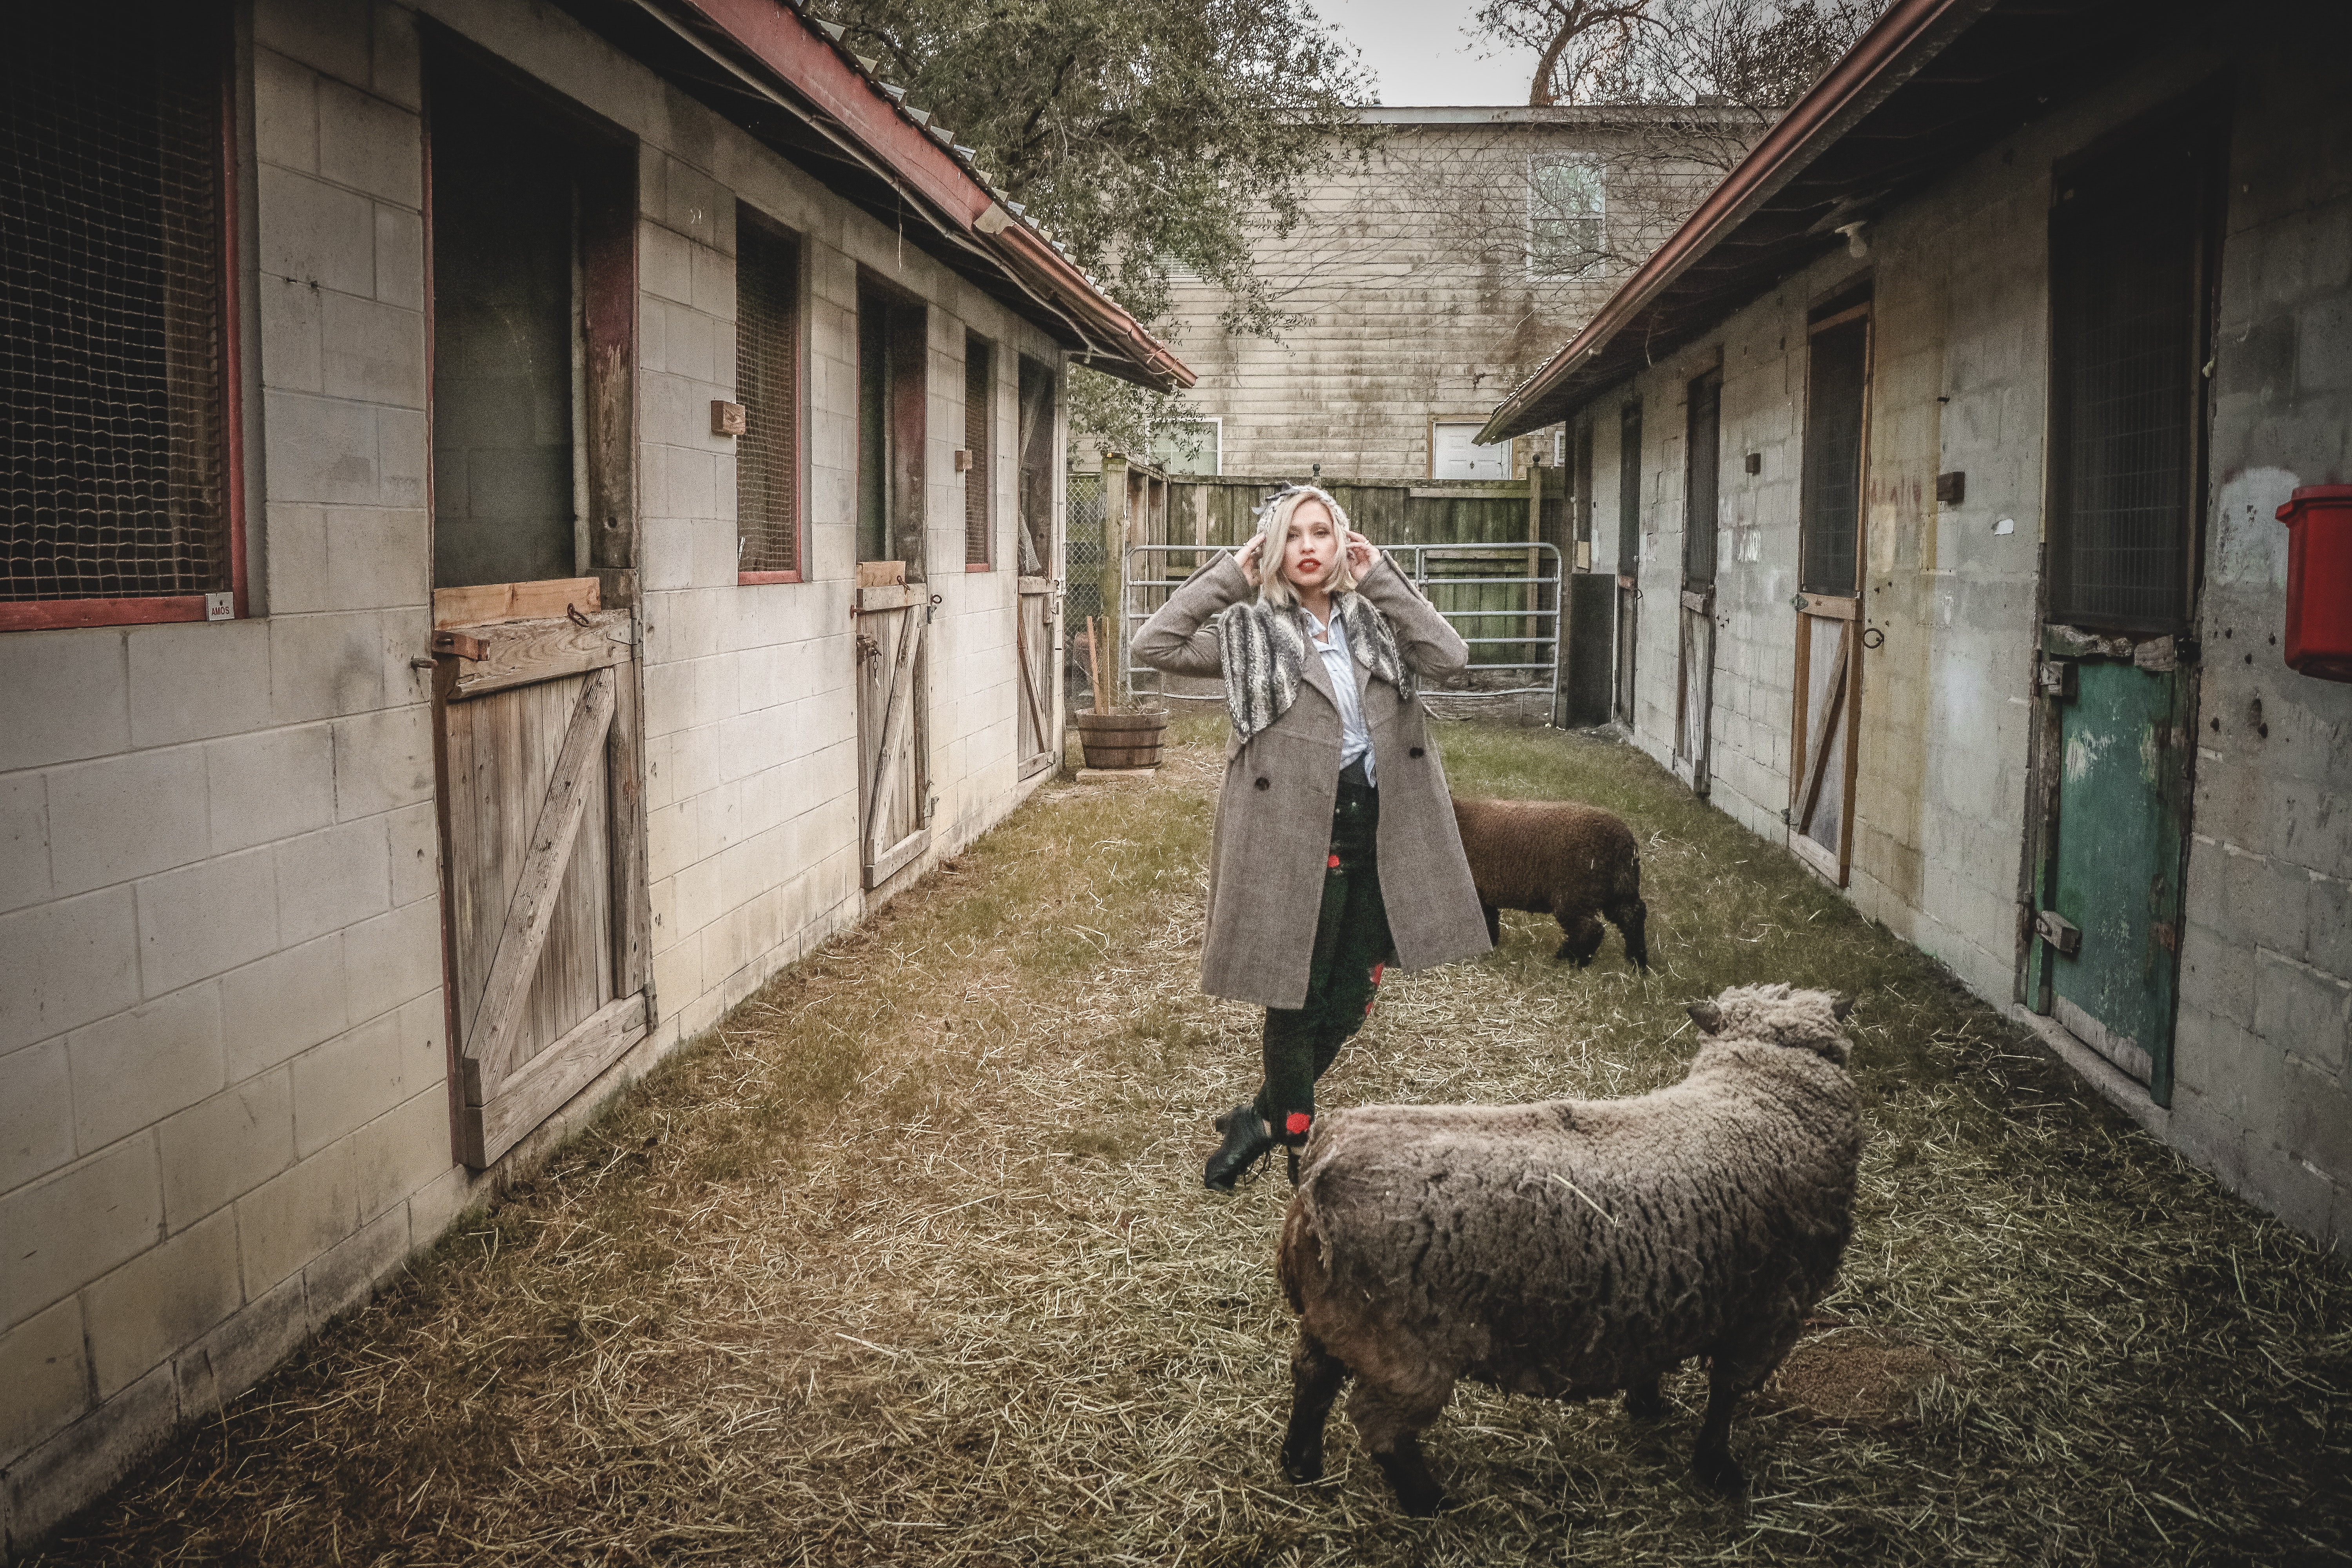 Woman Standing Near Sheep, Agriculture, Livestock, Wear, Trees, HQ Photo